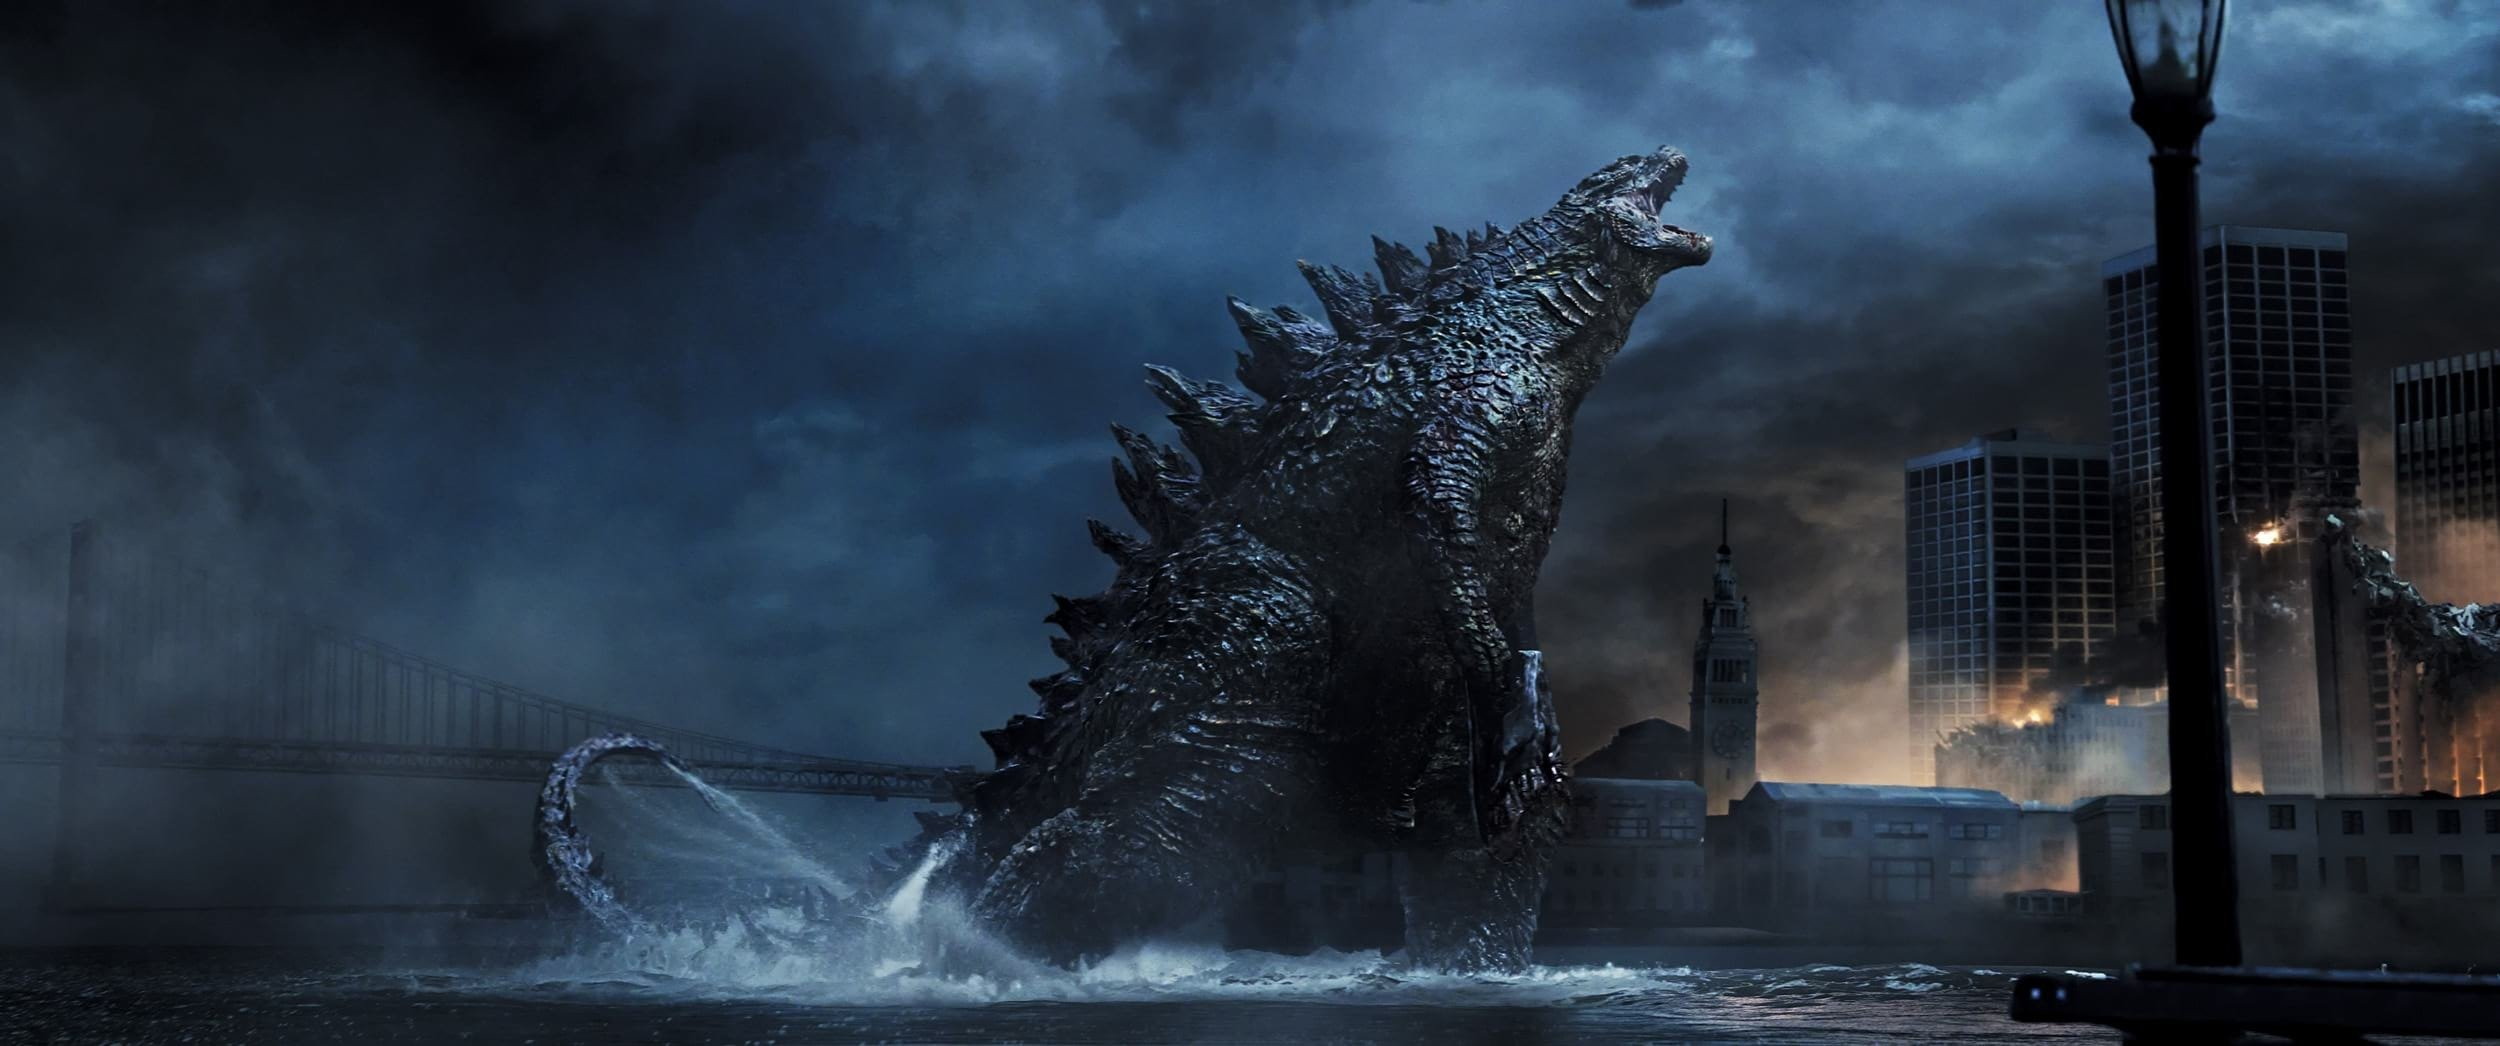 Godzilla 2014 Featured Image